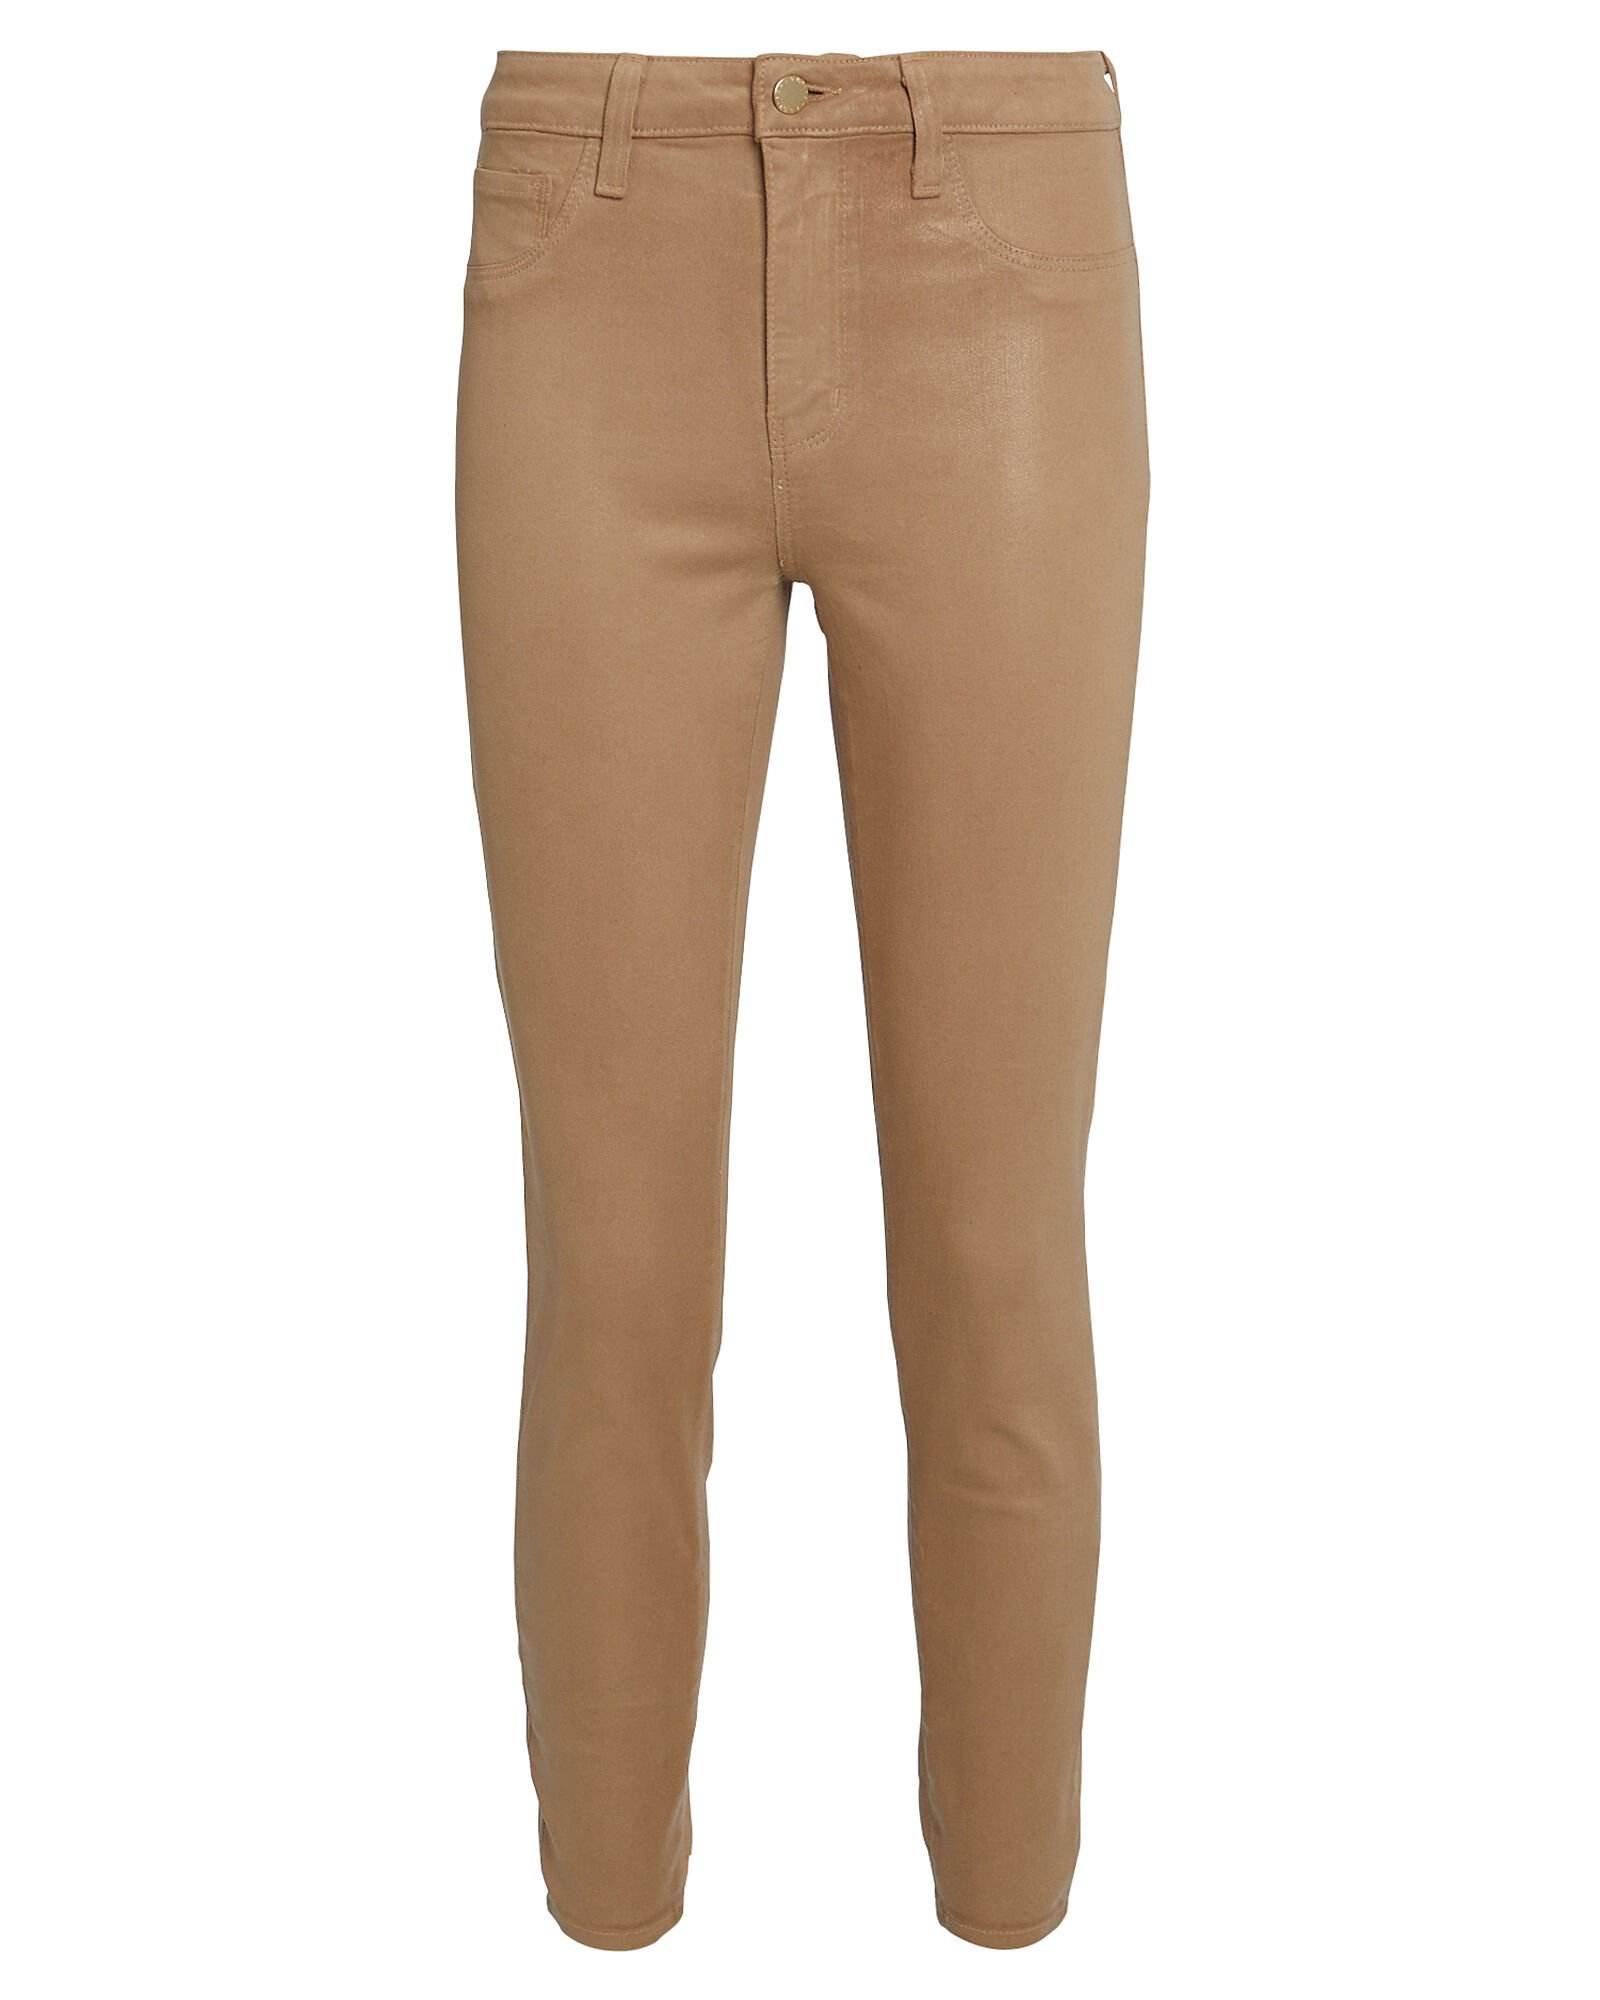 L'Agence | Margot Coated High-Rise Skinny Jeans | INTERMIX®